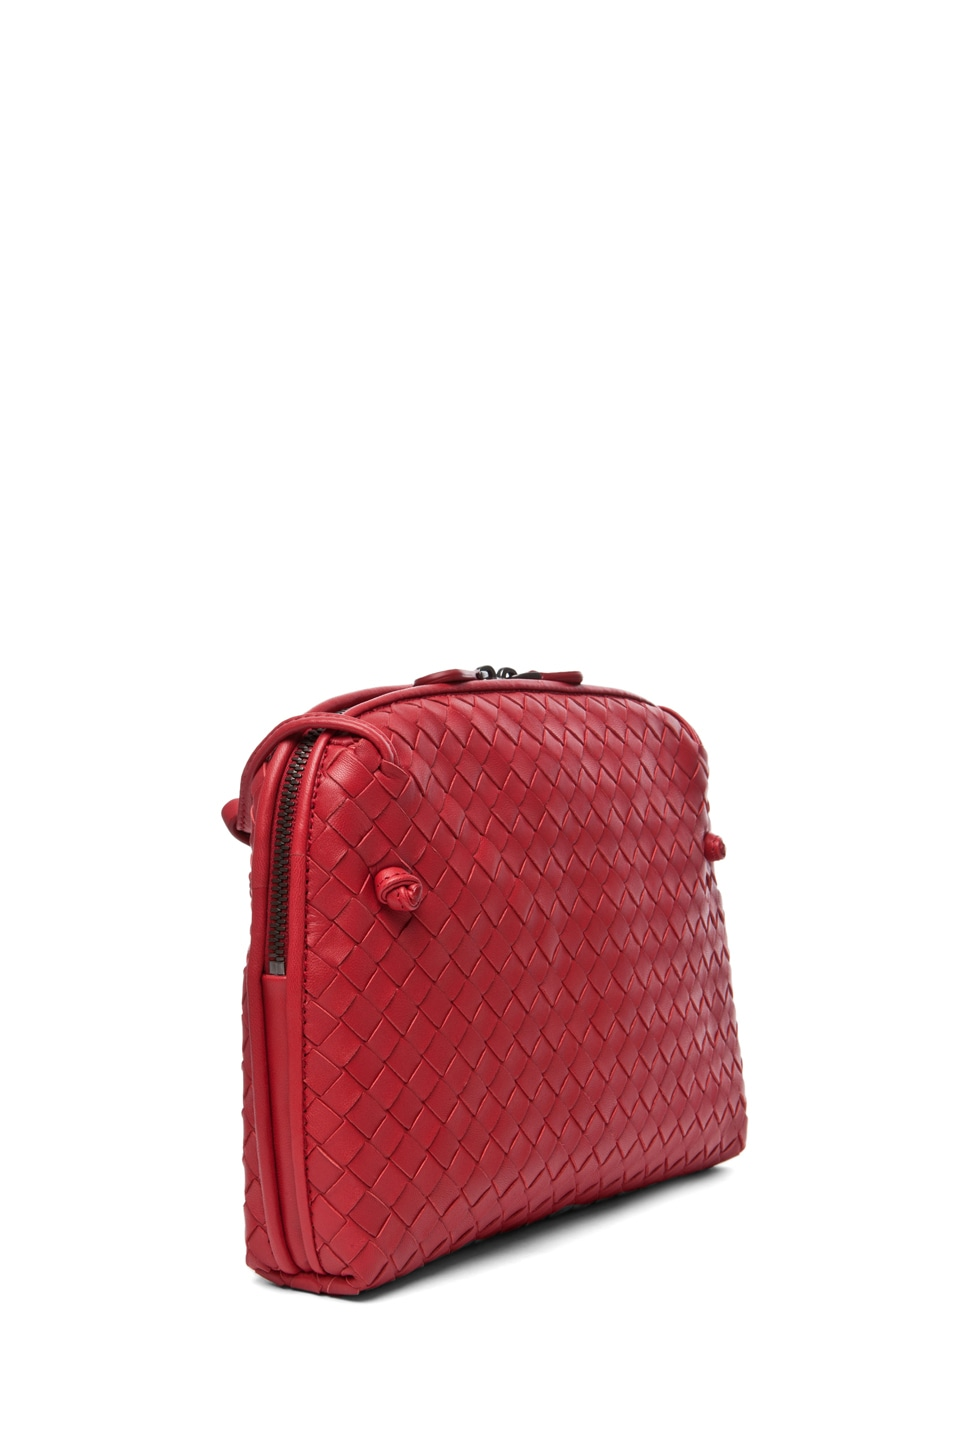 Image 3 of Bottega Veneta Small Messenger Bag in Blood